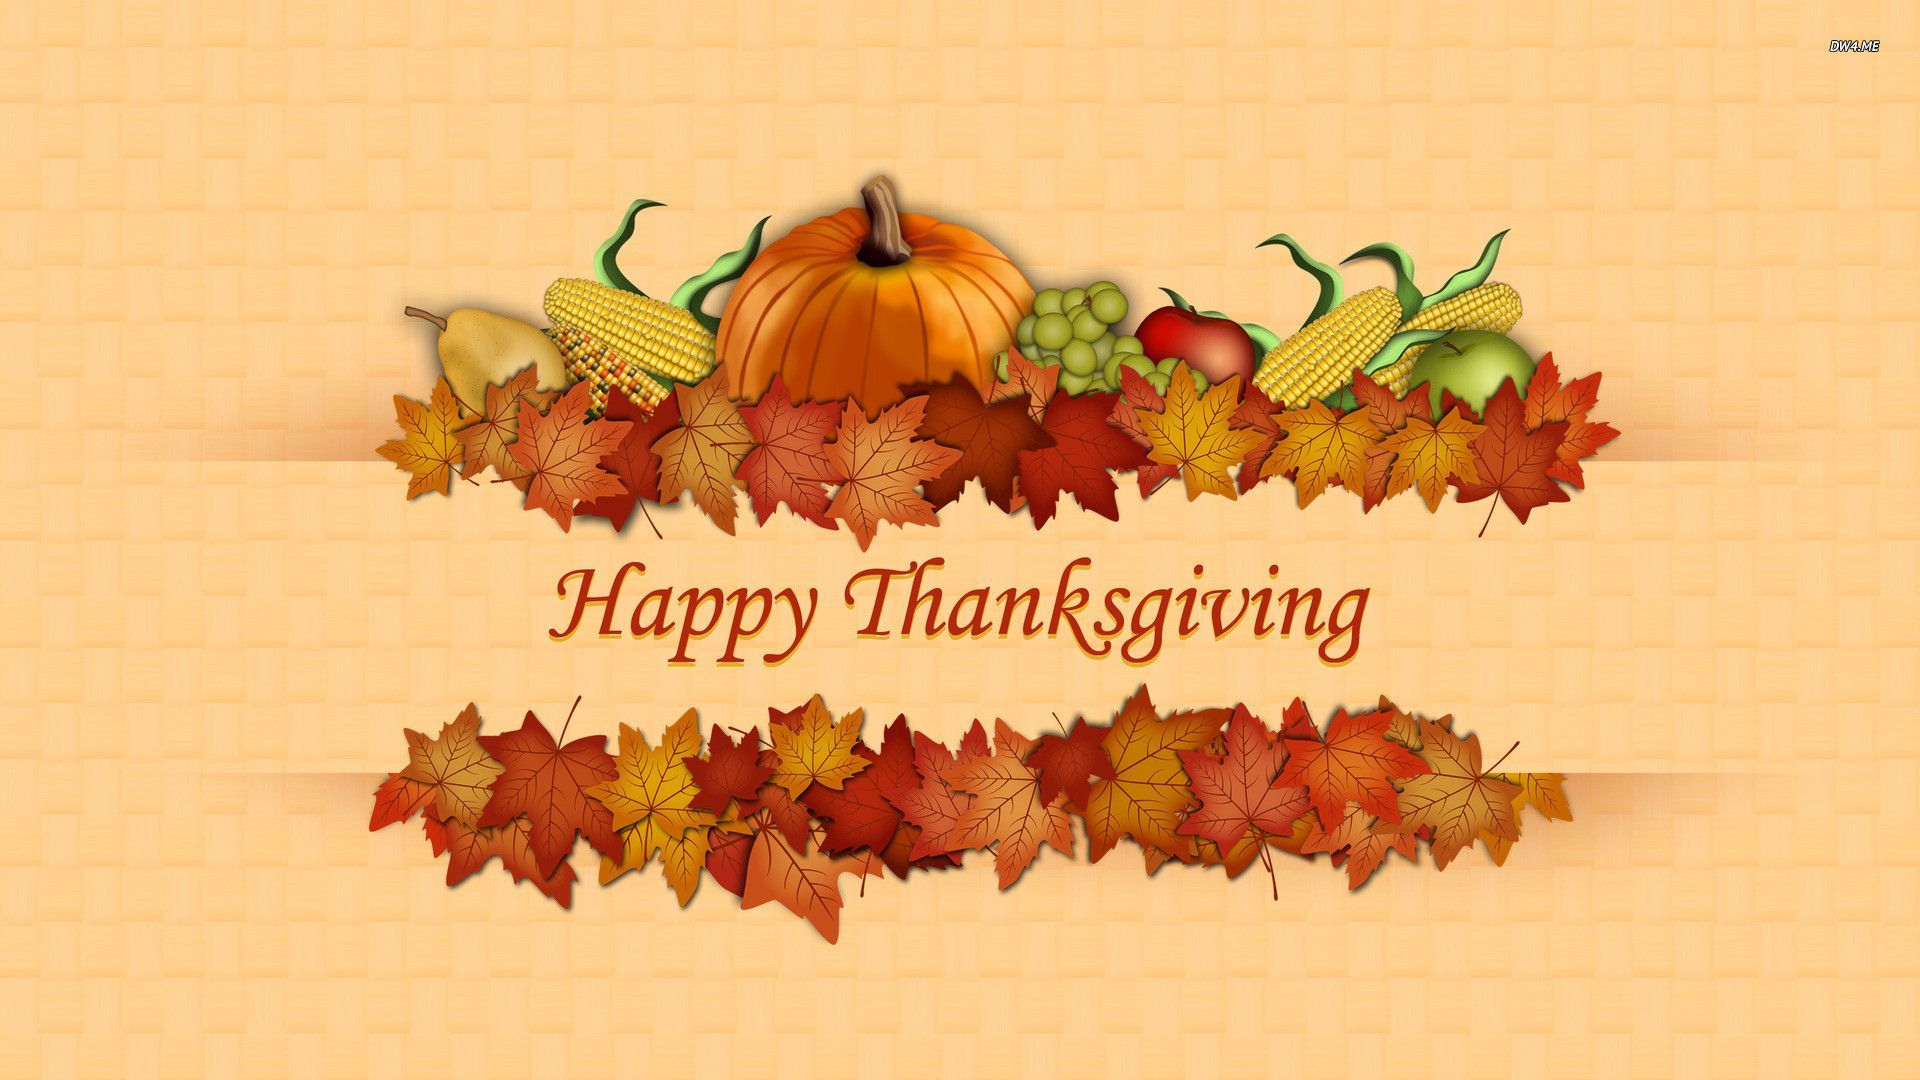 Free Thanksgiving Desktop Wallpaper